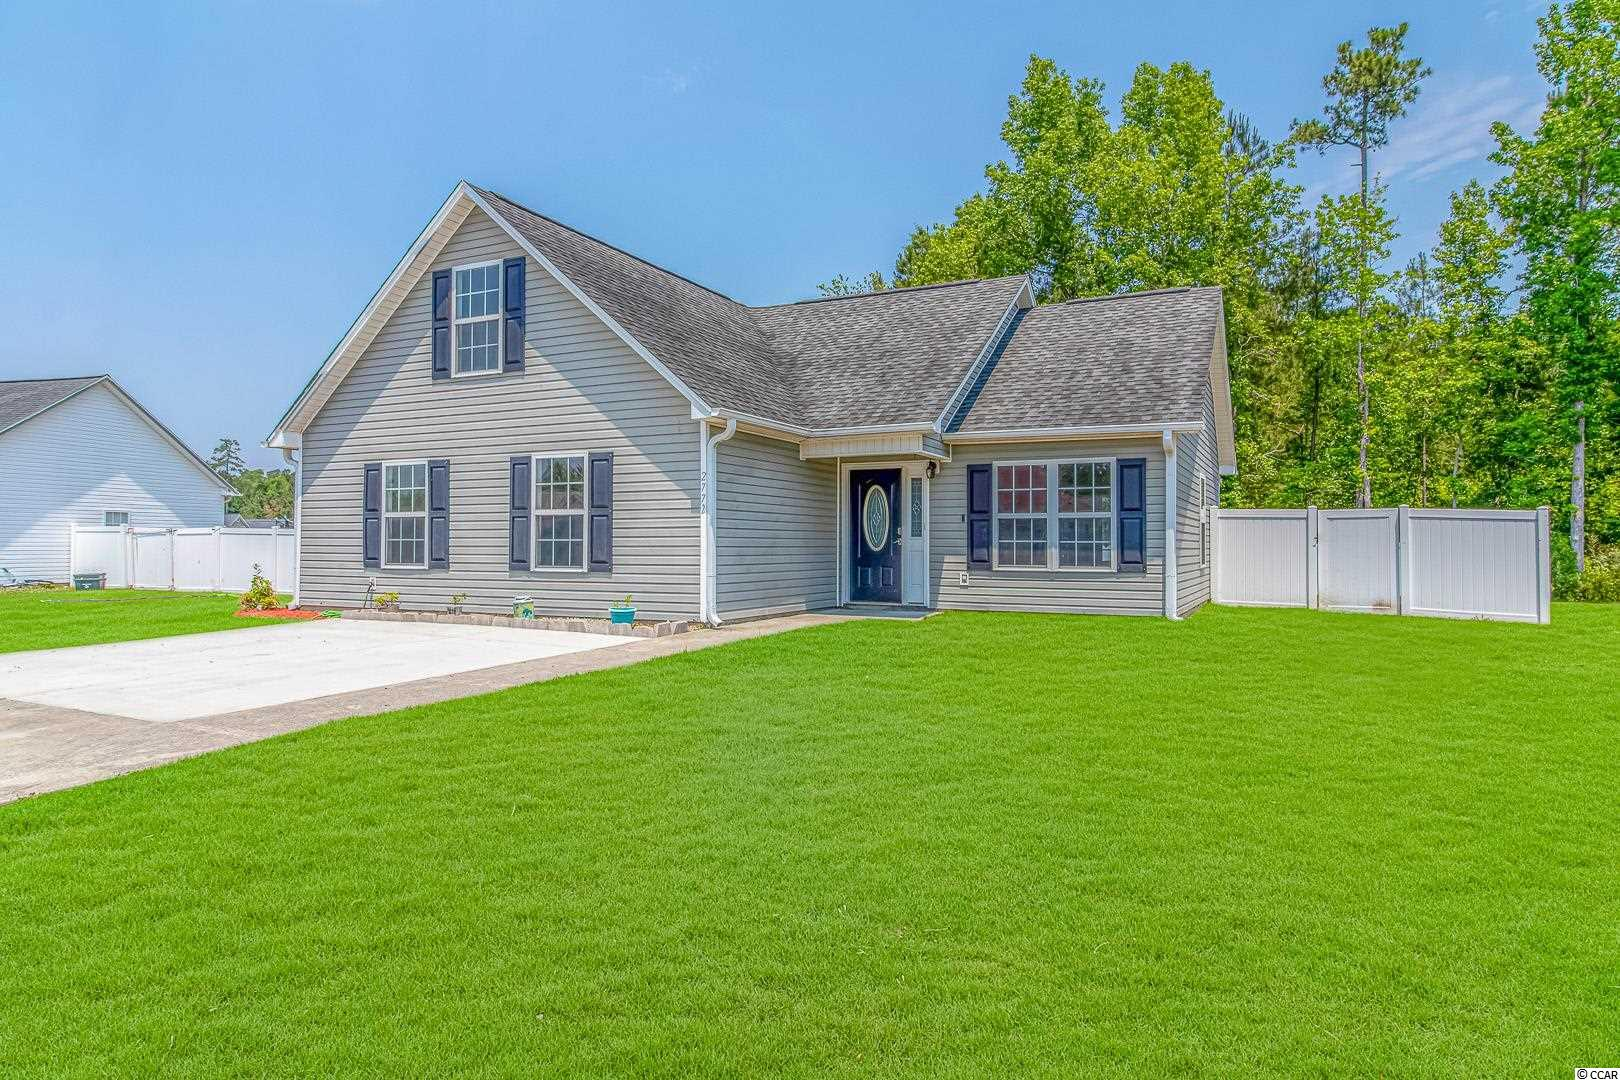 Back On the Market! 1, 2, 3, 4, 5 Bedrooms! Plus a Bonus Room. Plenty of space for the whole gang. Quiet neighborhood with a full fenced in yard. Don't miss this home with limitless potential.